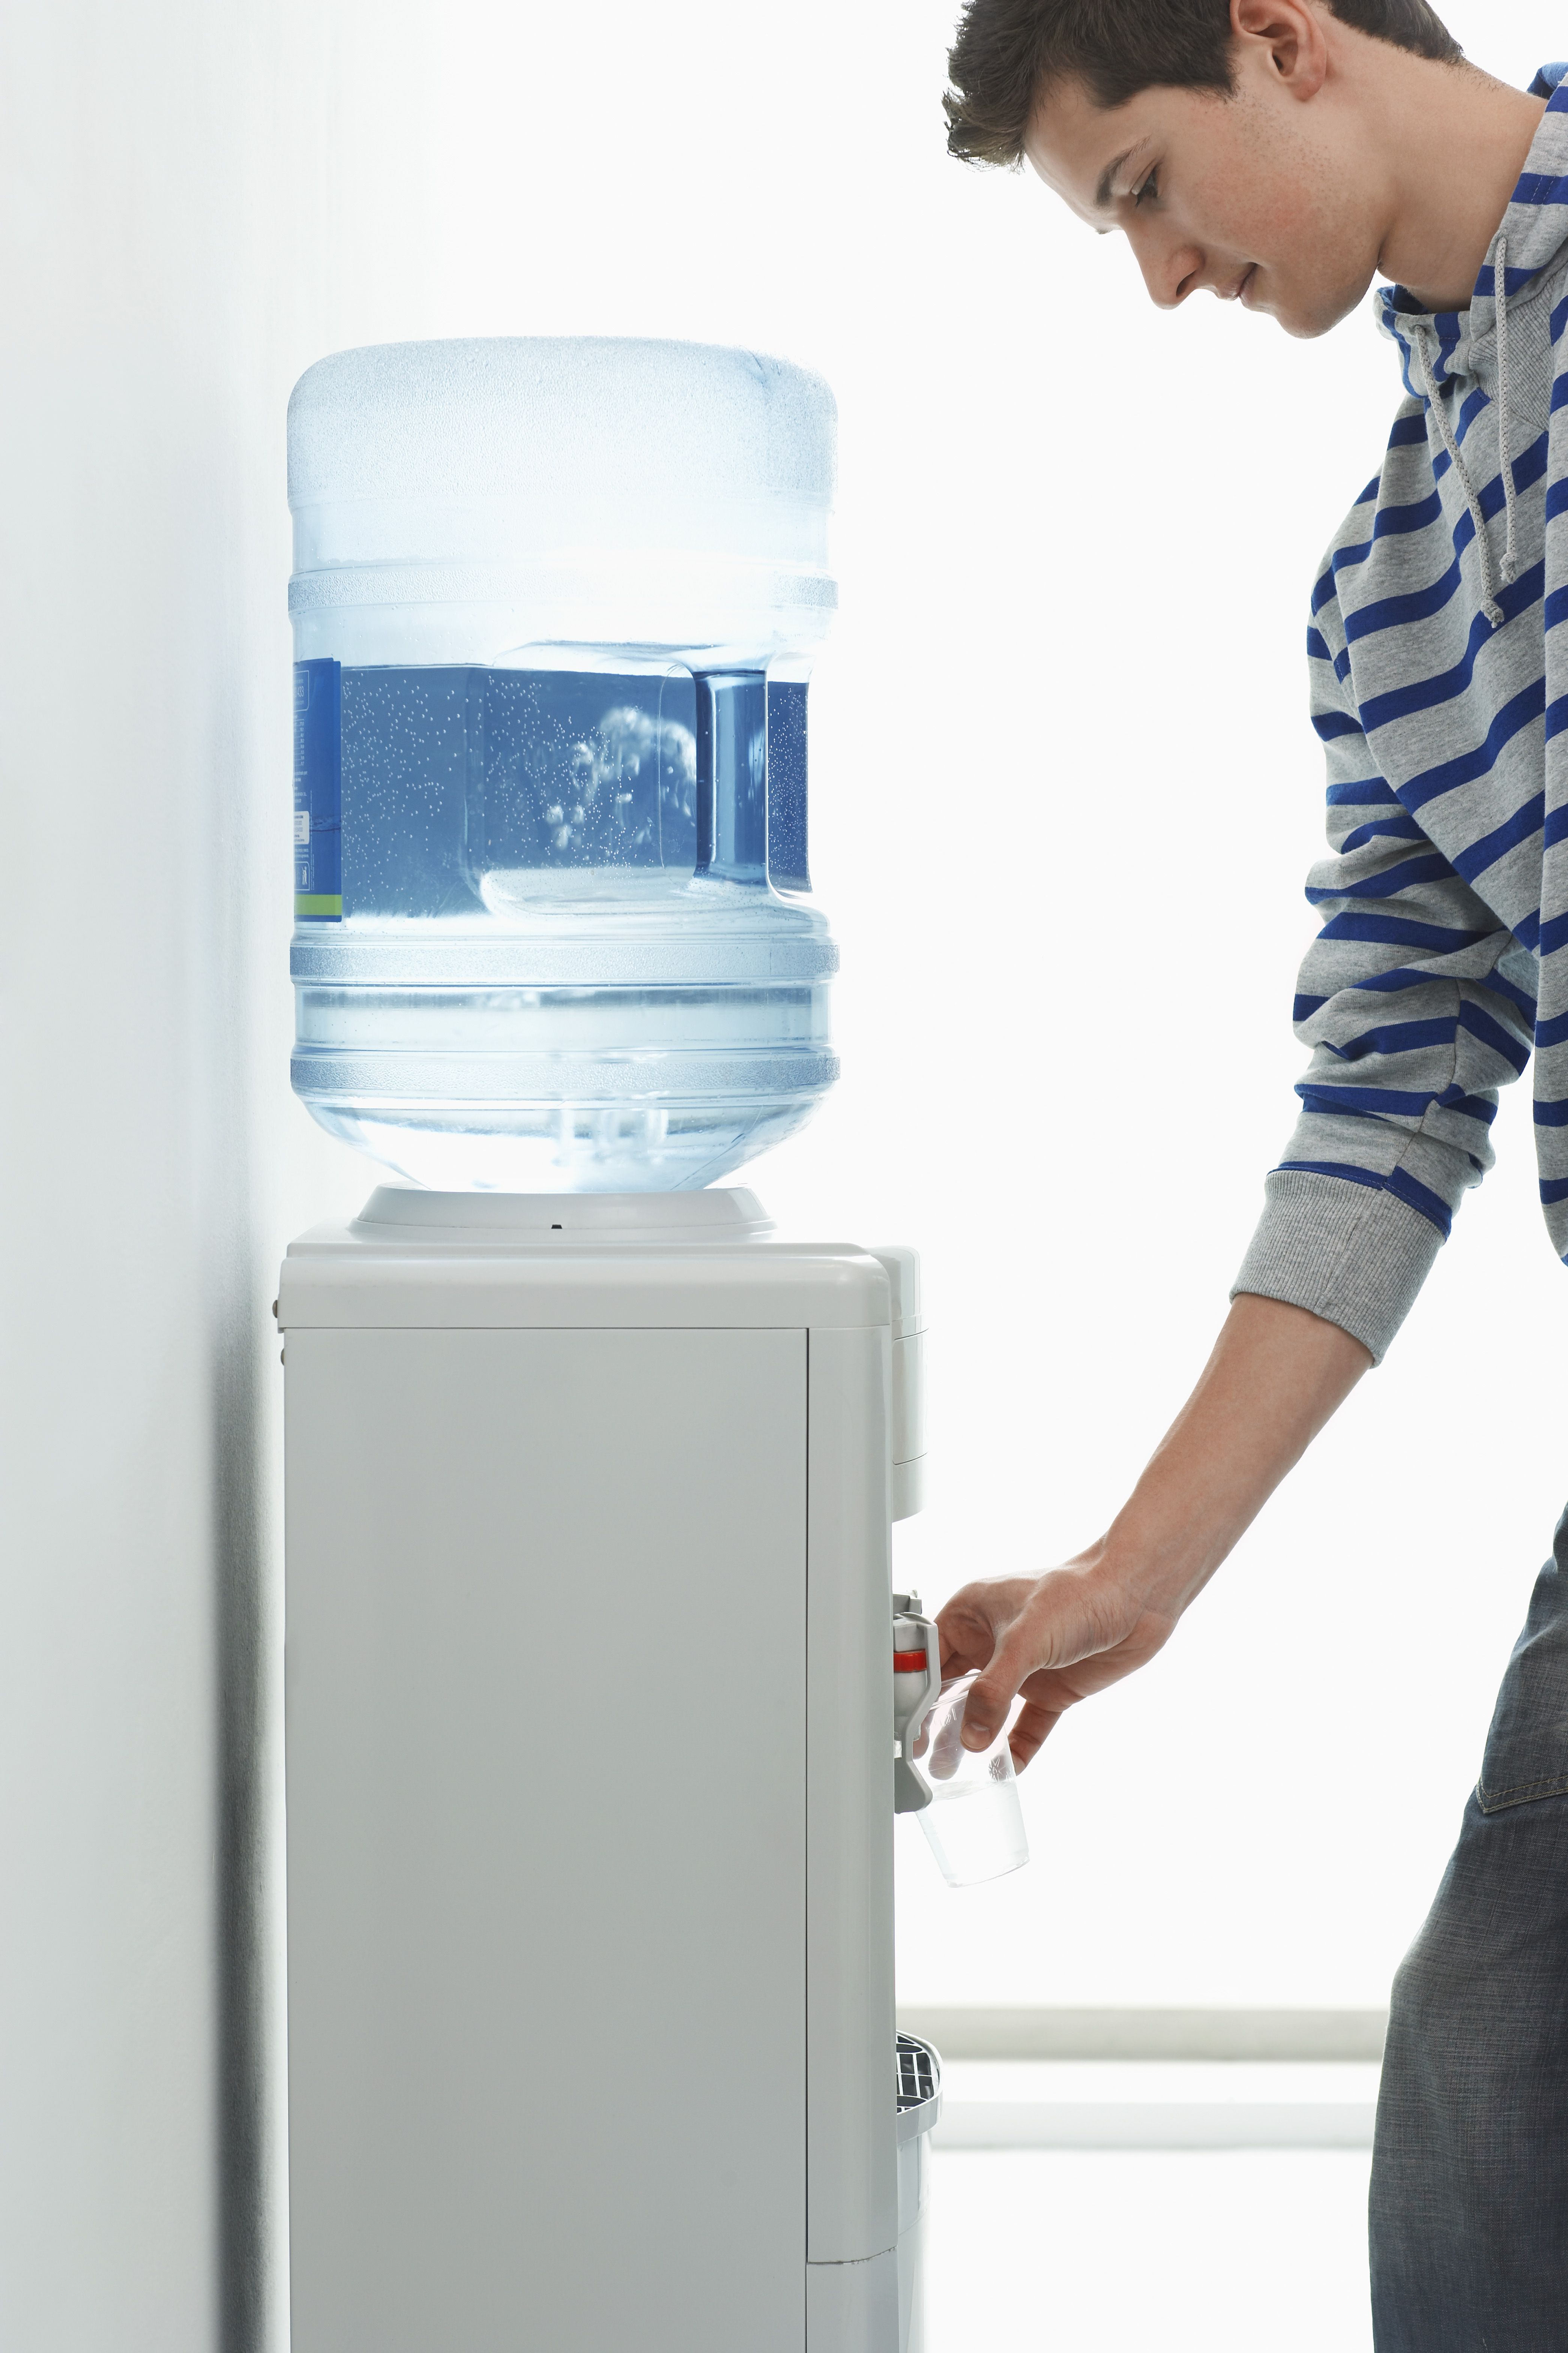 Before You Buy A Water Cooler Or Water Dispenser